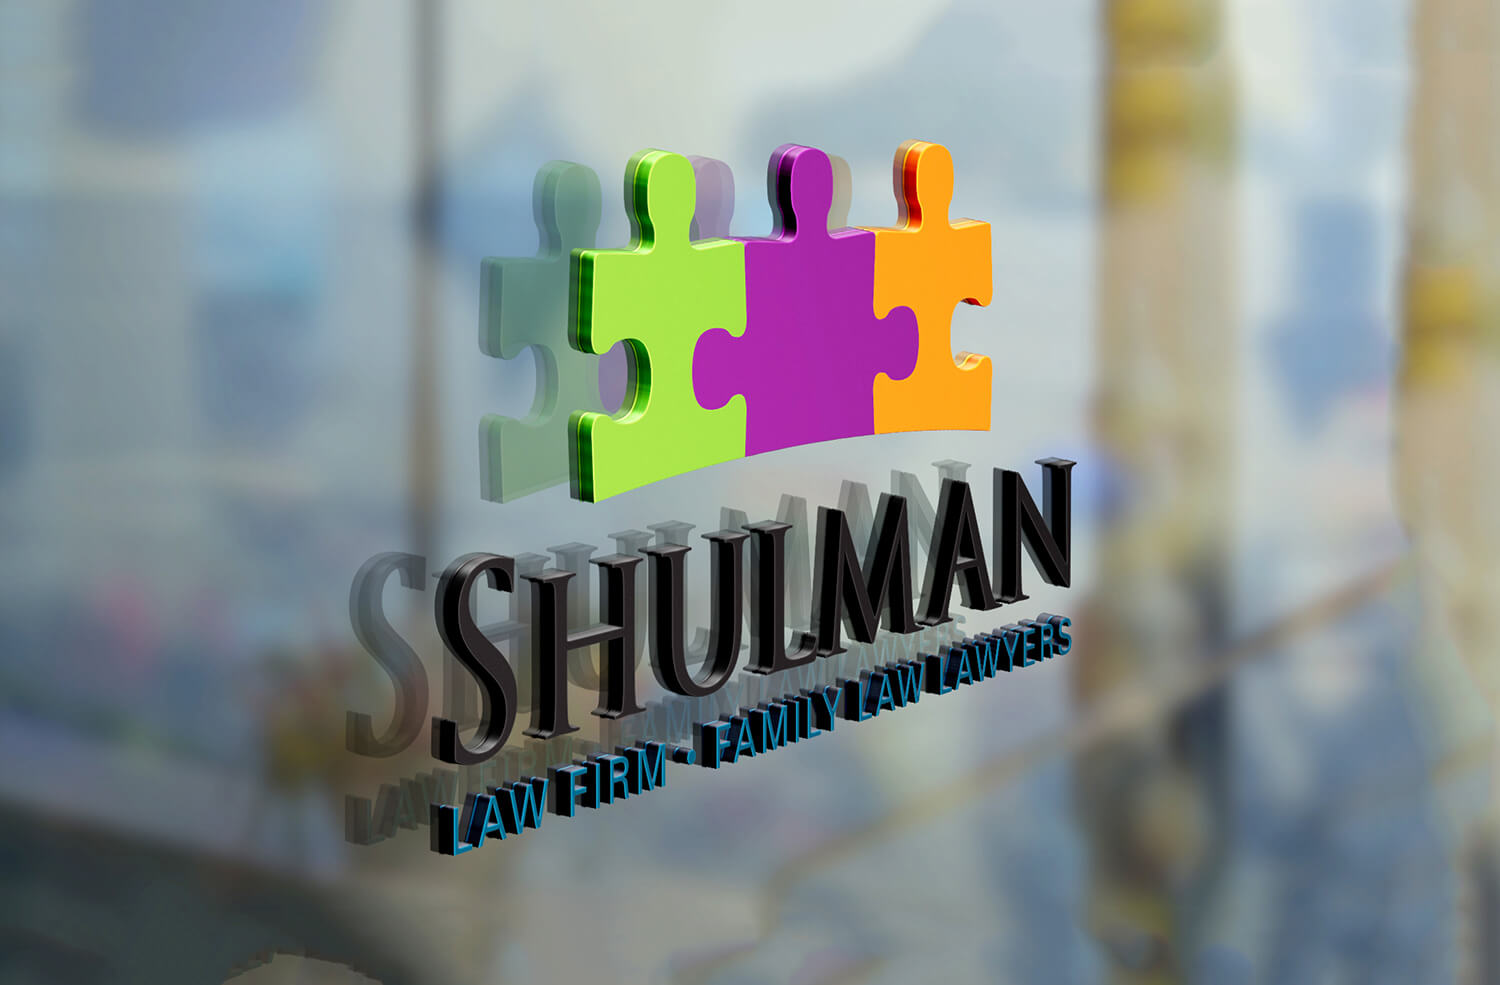 Shulman law toronto family and divorce lawyers solutioingenieria Image collections